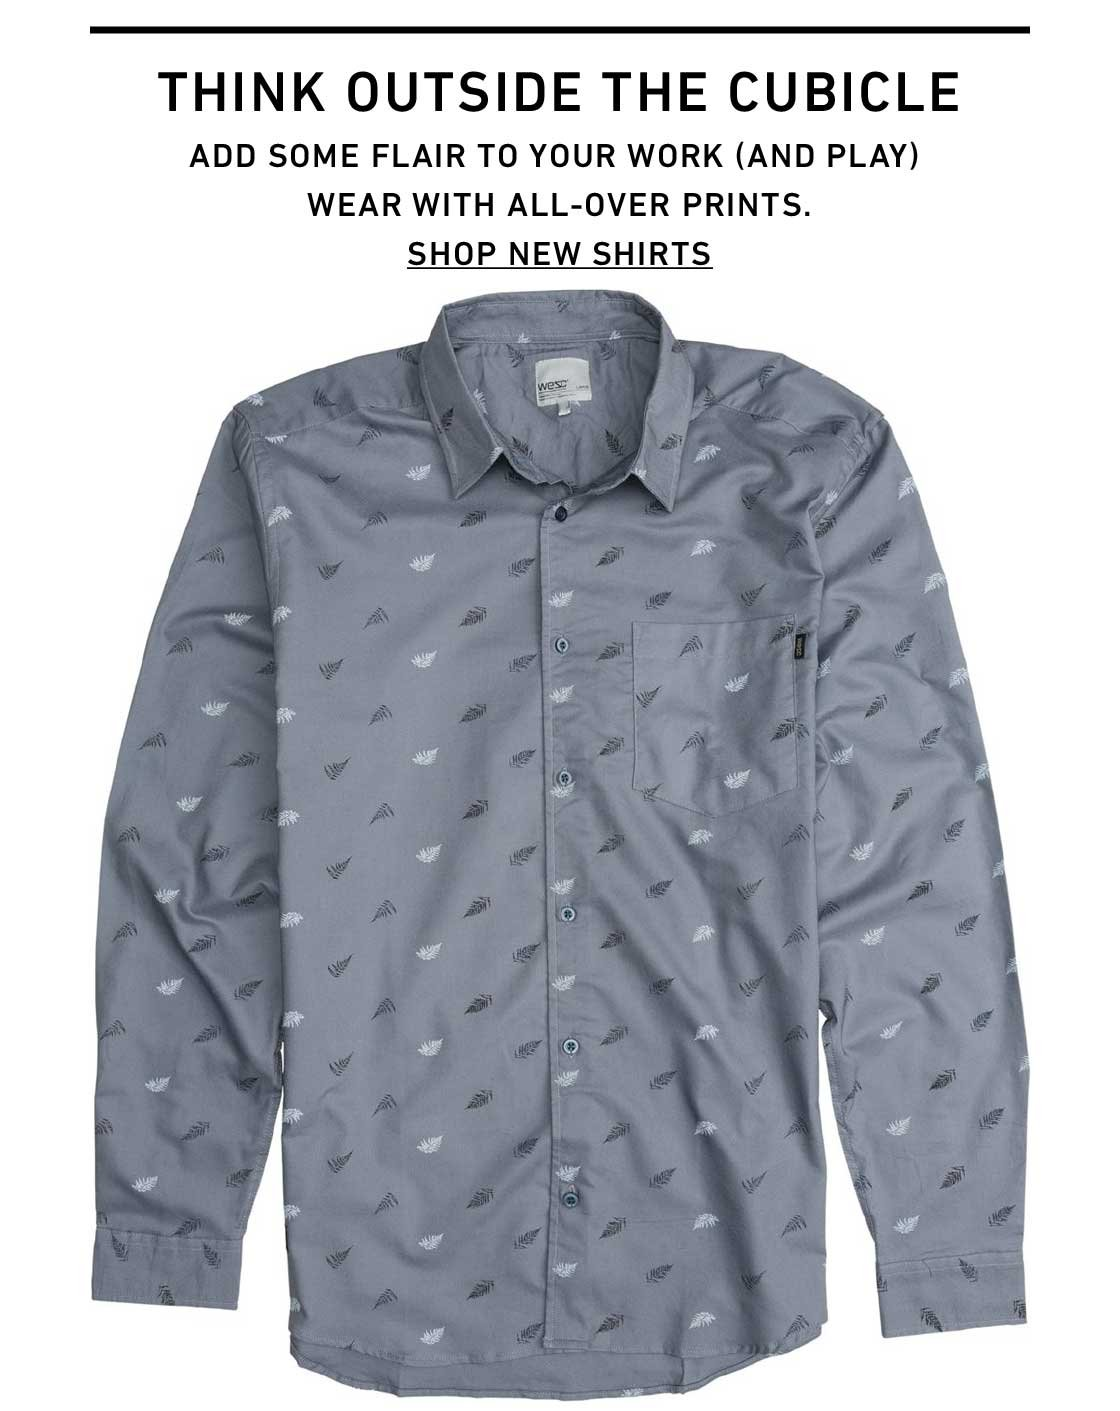 Think Outside the Cubicle. Shop New Shirts